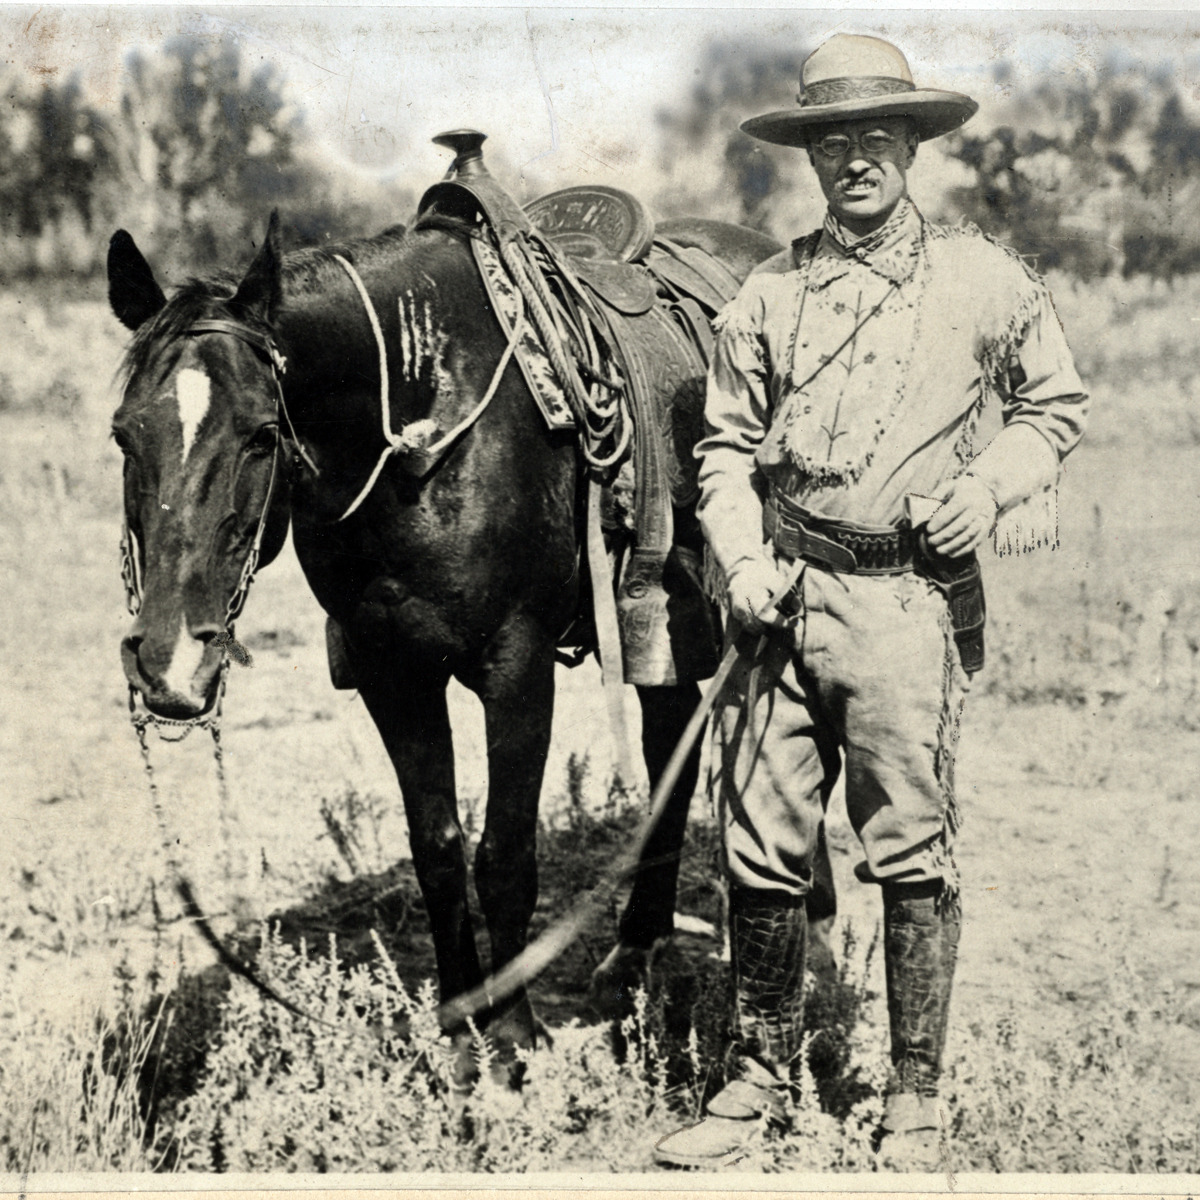 Theodore Roosevelt first traveled west in 1883 to pursue his boyhood dreams of frontier life. When he returned to New York in 1886, he began to lobby for conservation.